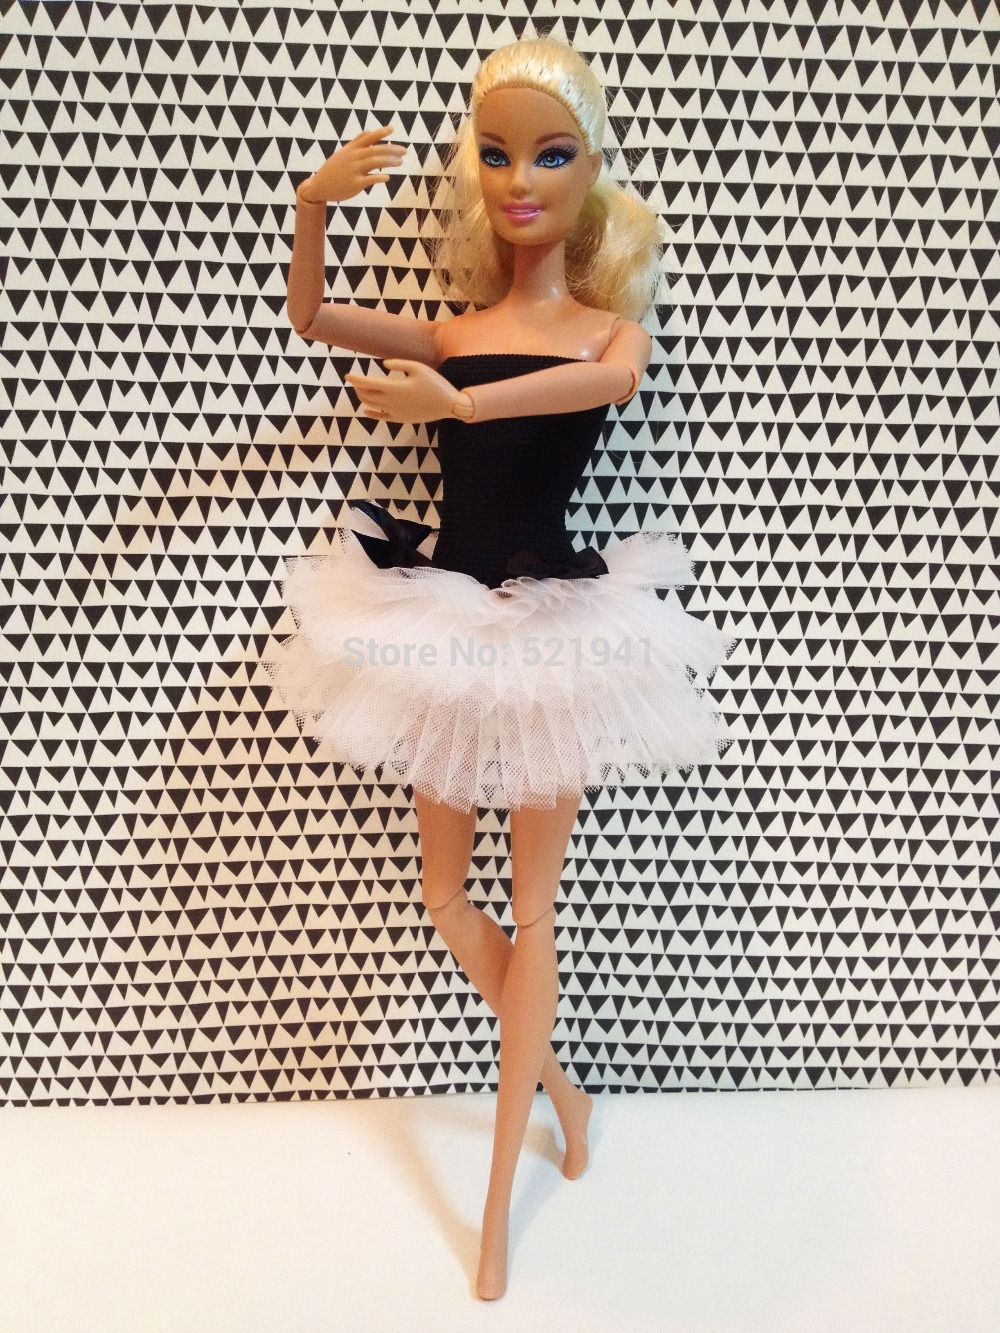 Doll Dancing Dress Ballet Skirt Fashion Doll Clothes Accessories For Barbie Doll,girls Toys For Children DIY GIFT